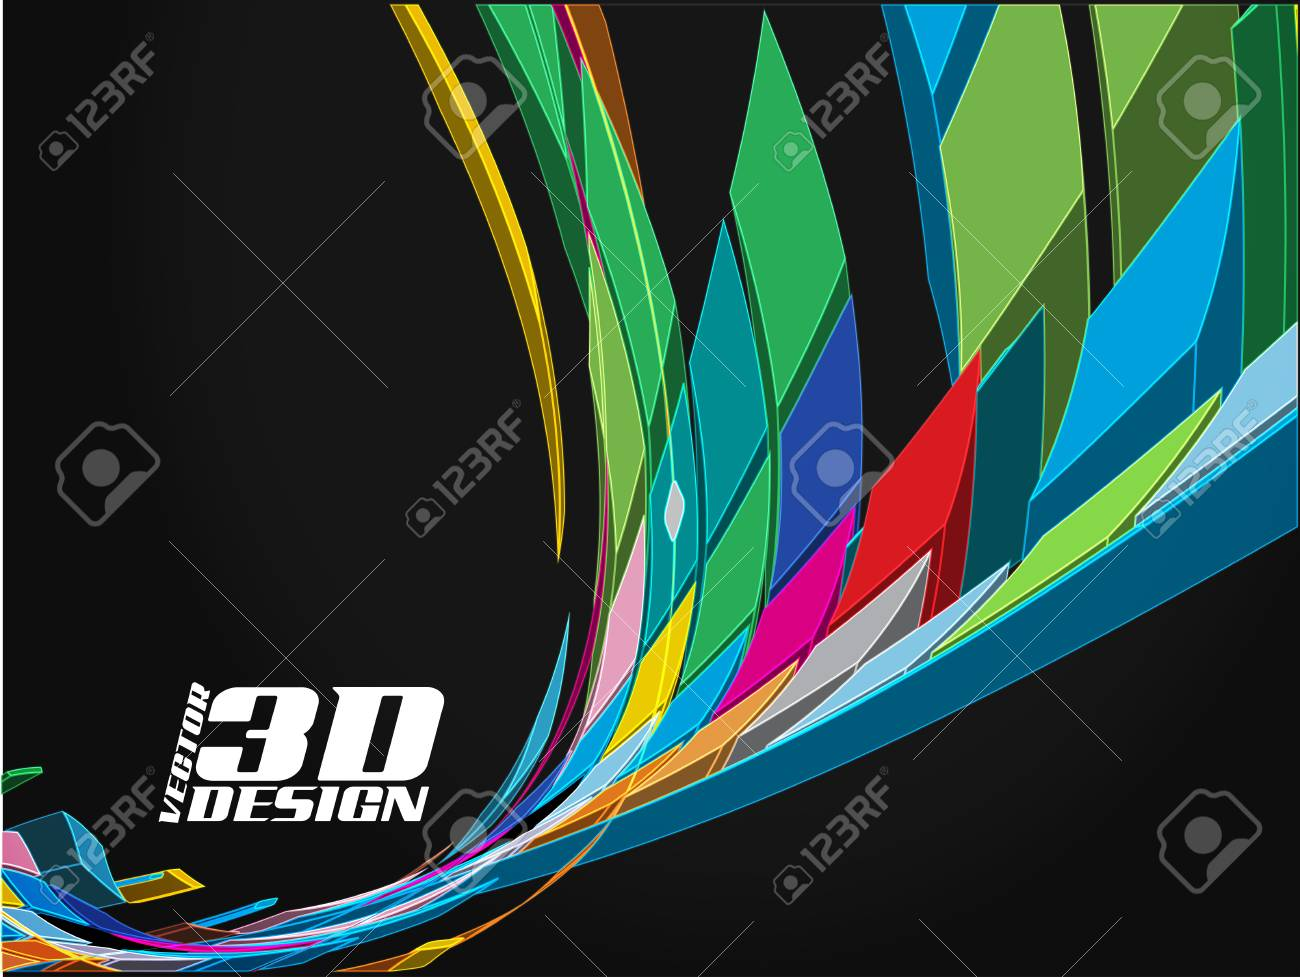 Abstract 3d design background, vector illustration Stock Vector - 9066214